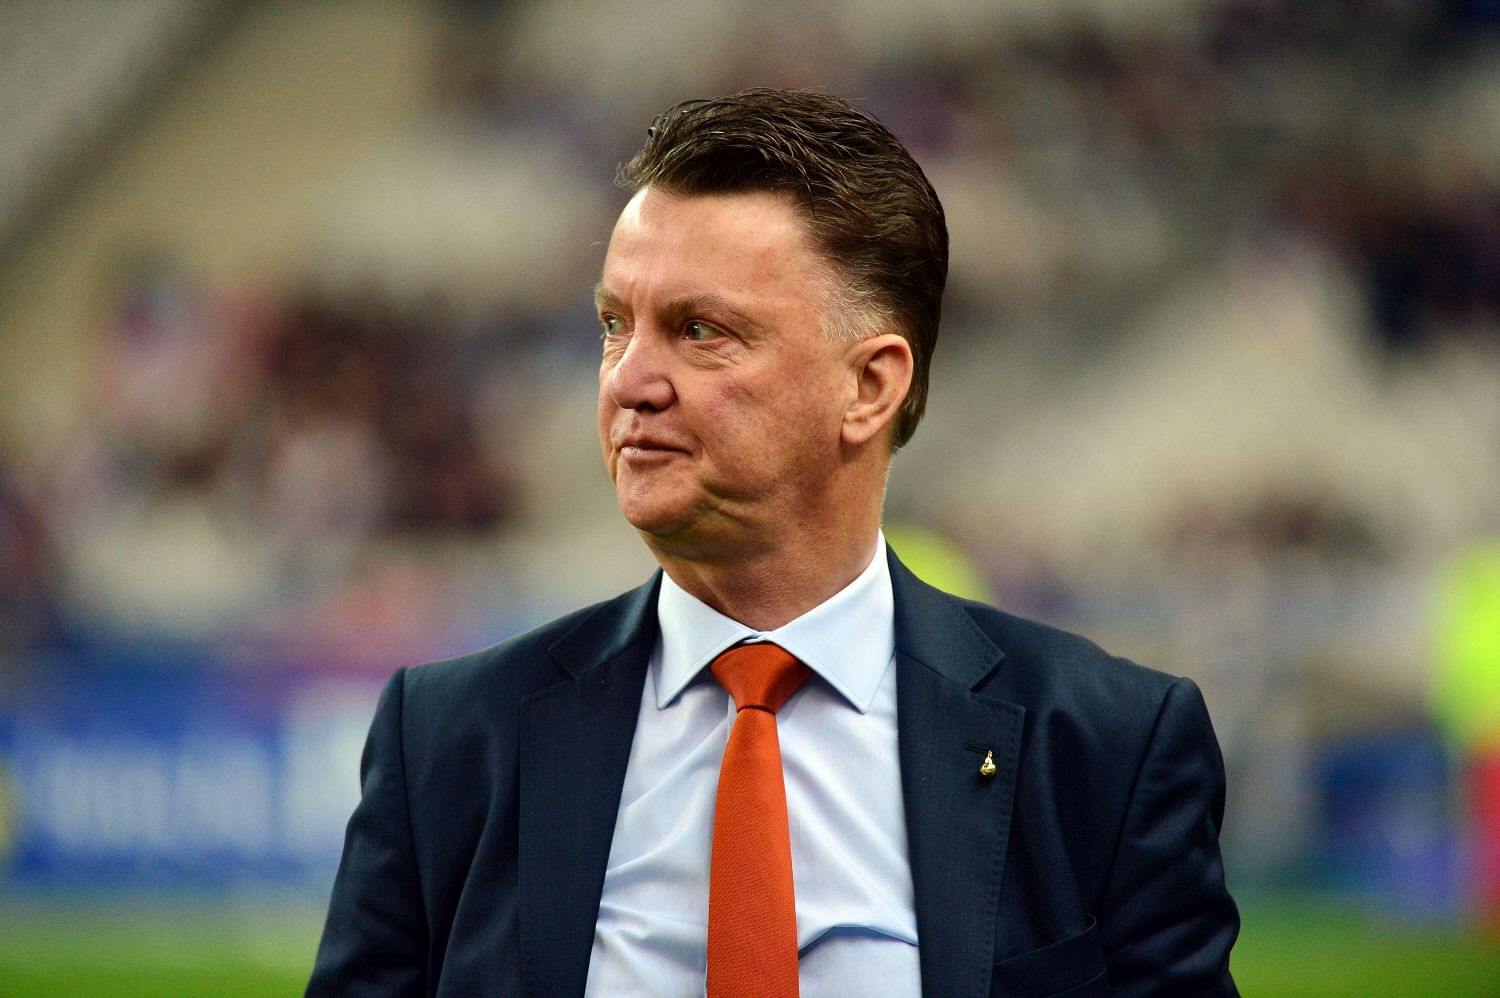 Van Gaal Refuses To Comment On Chicharito's Future